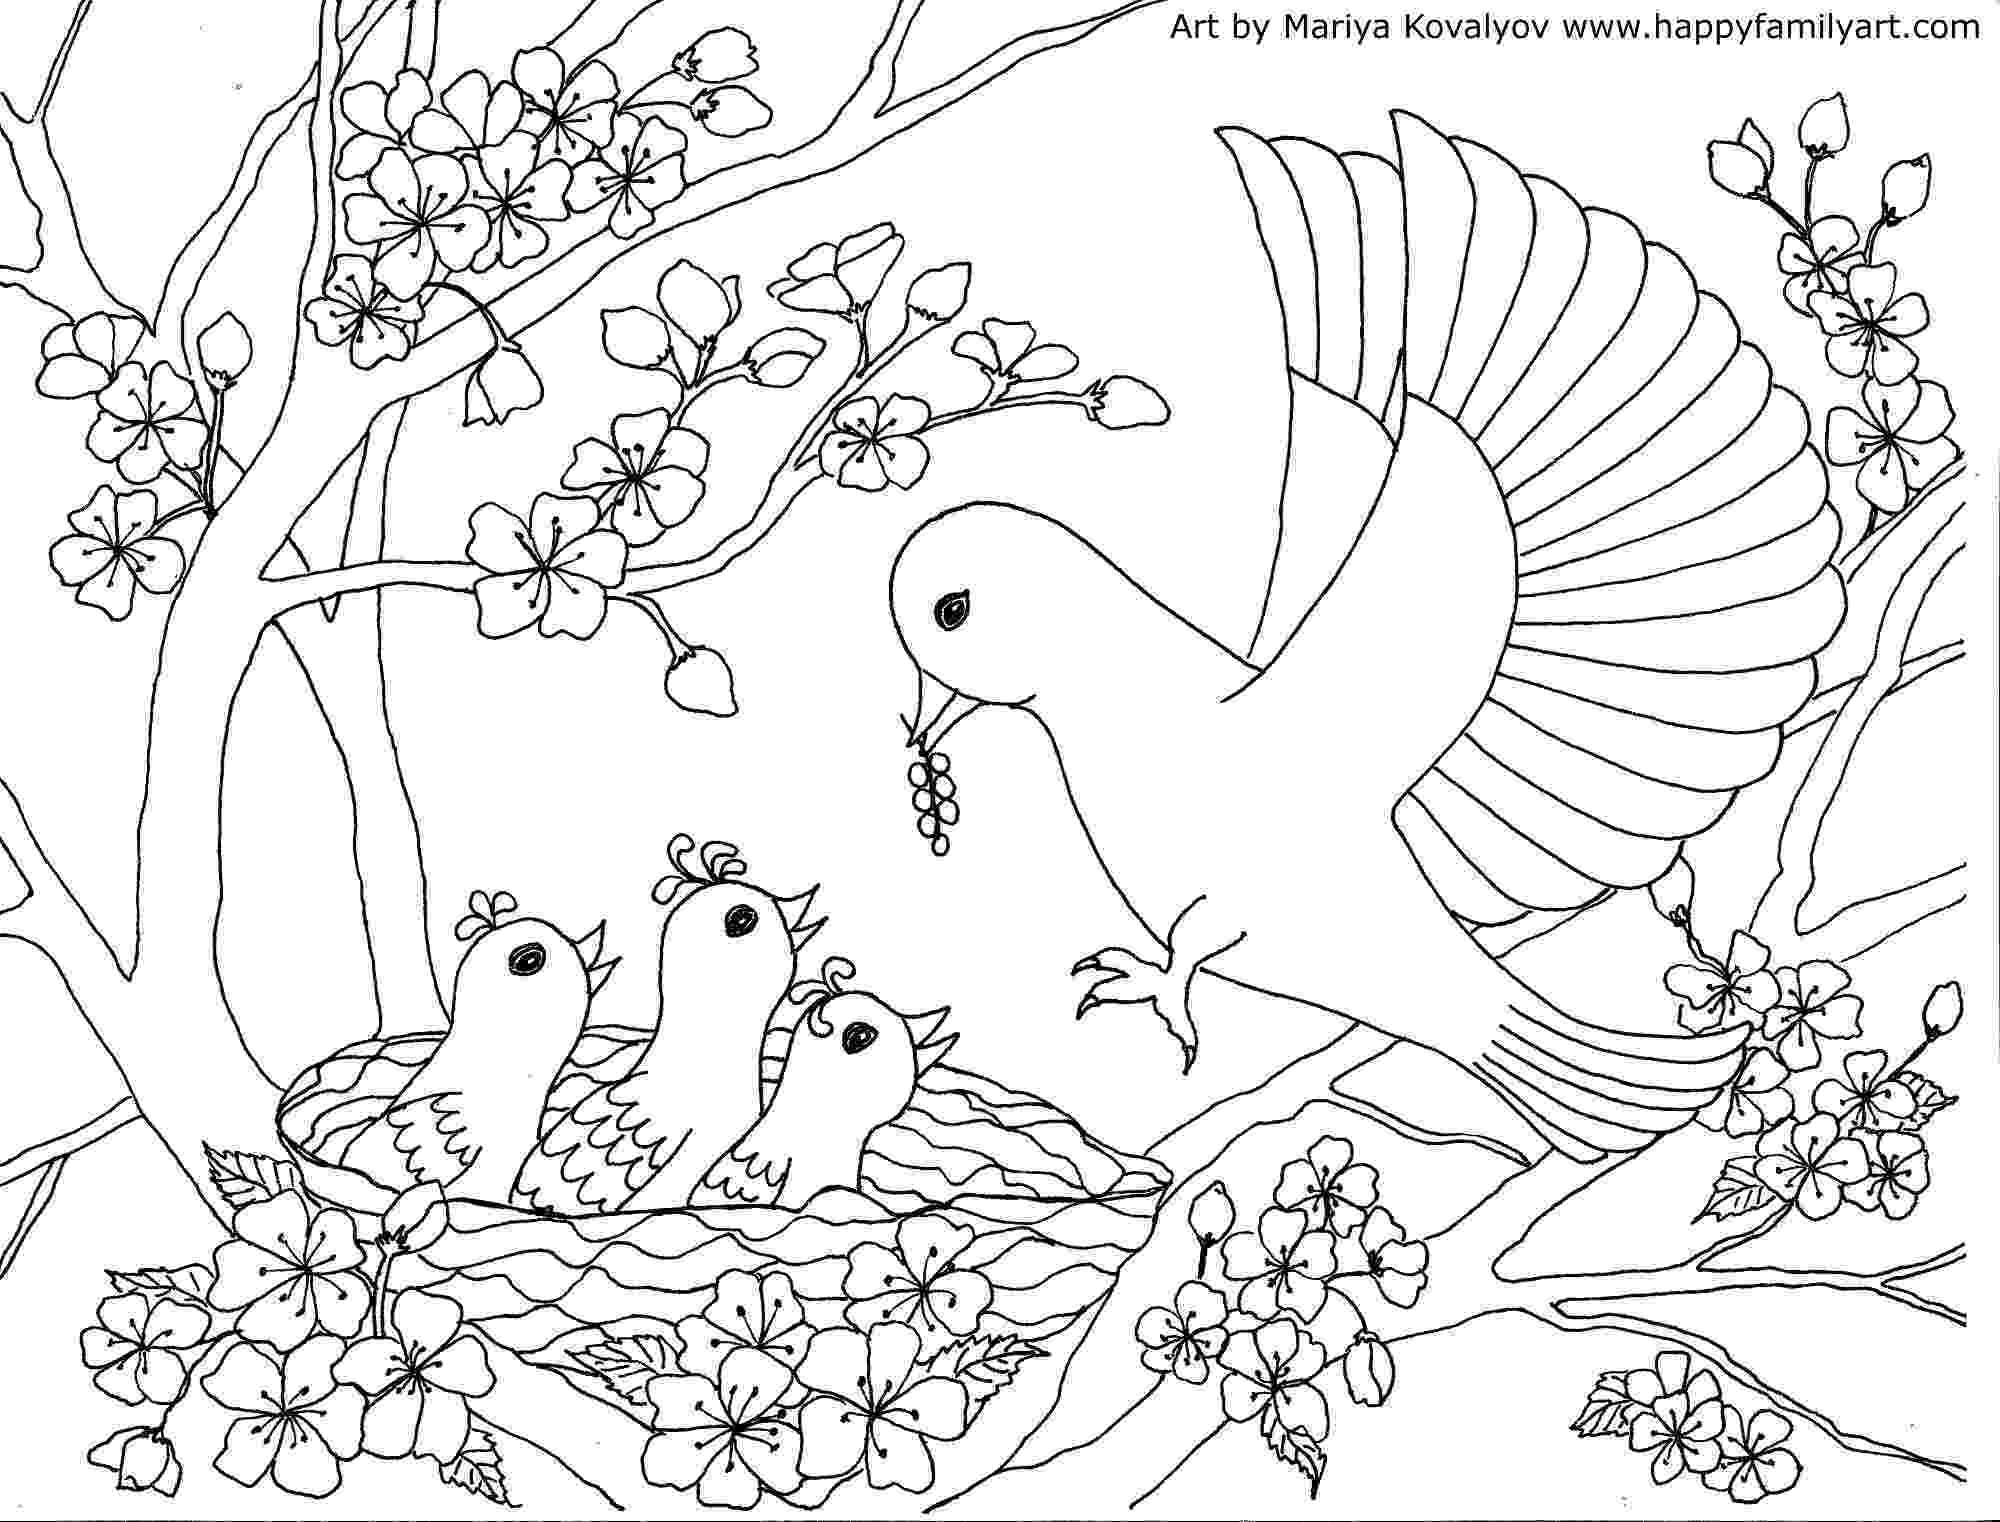 colouring picture bird birds coloring page happy family art bird colouring picture